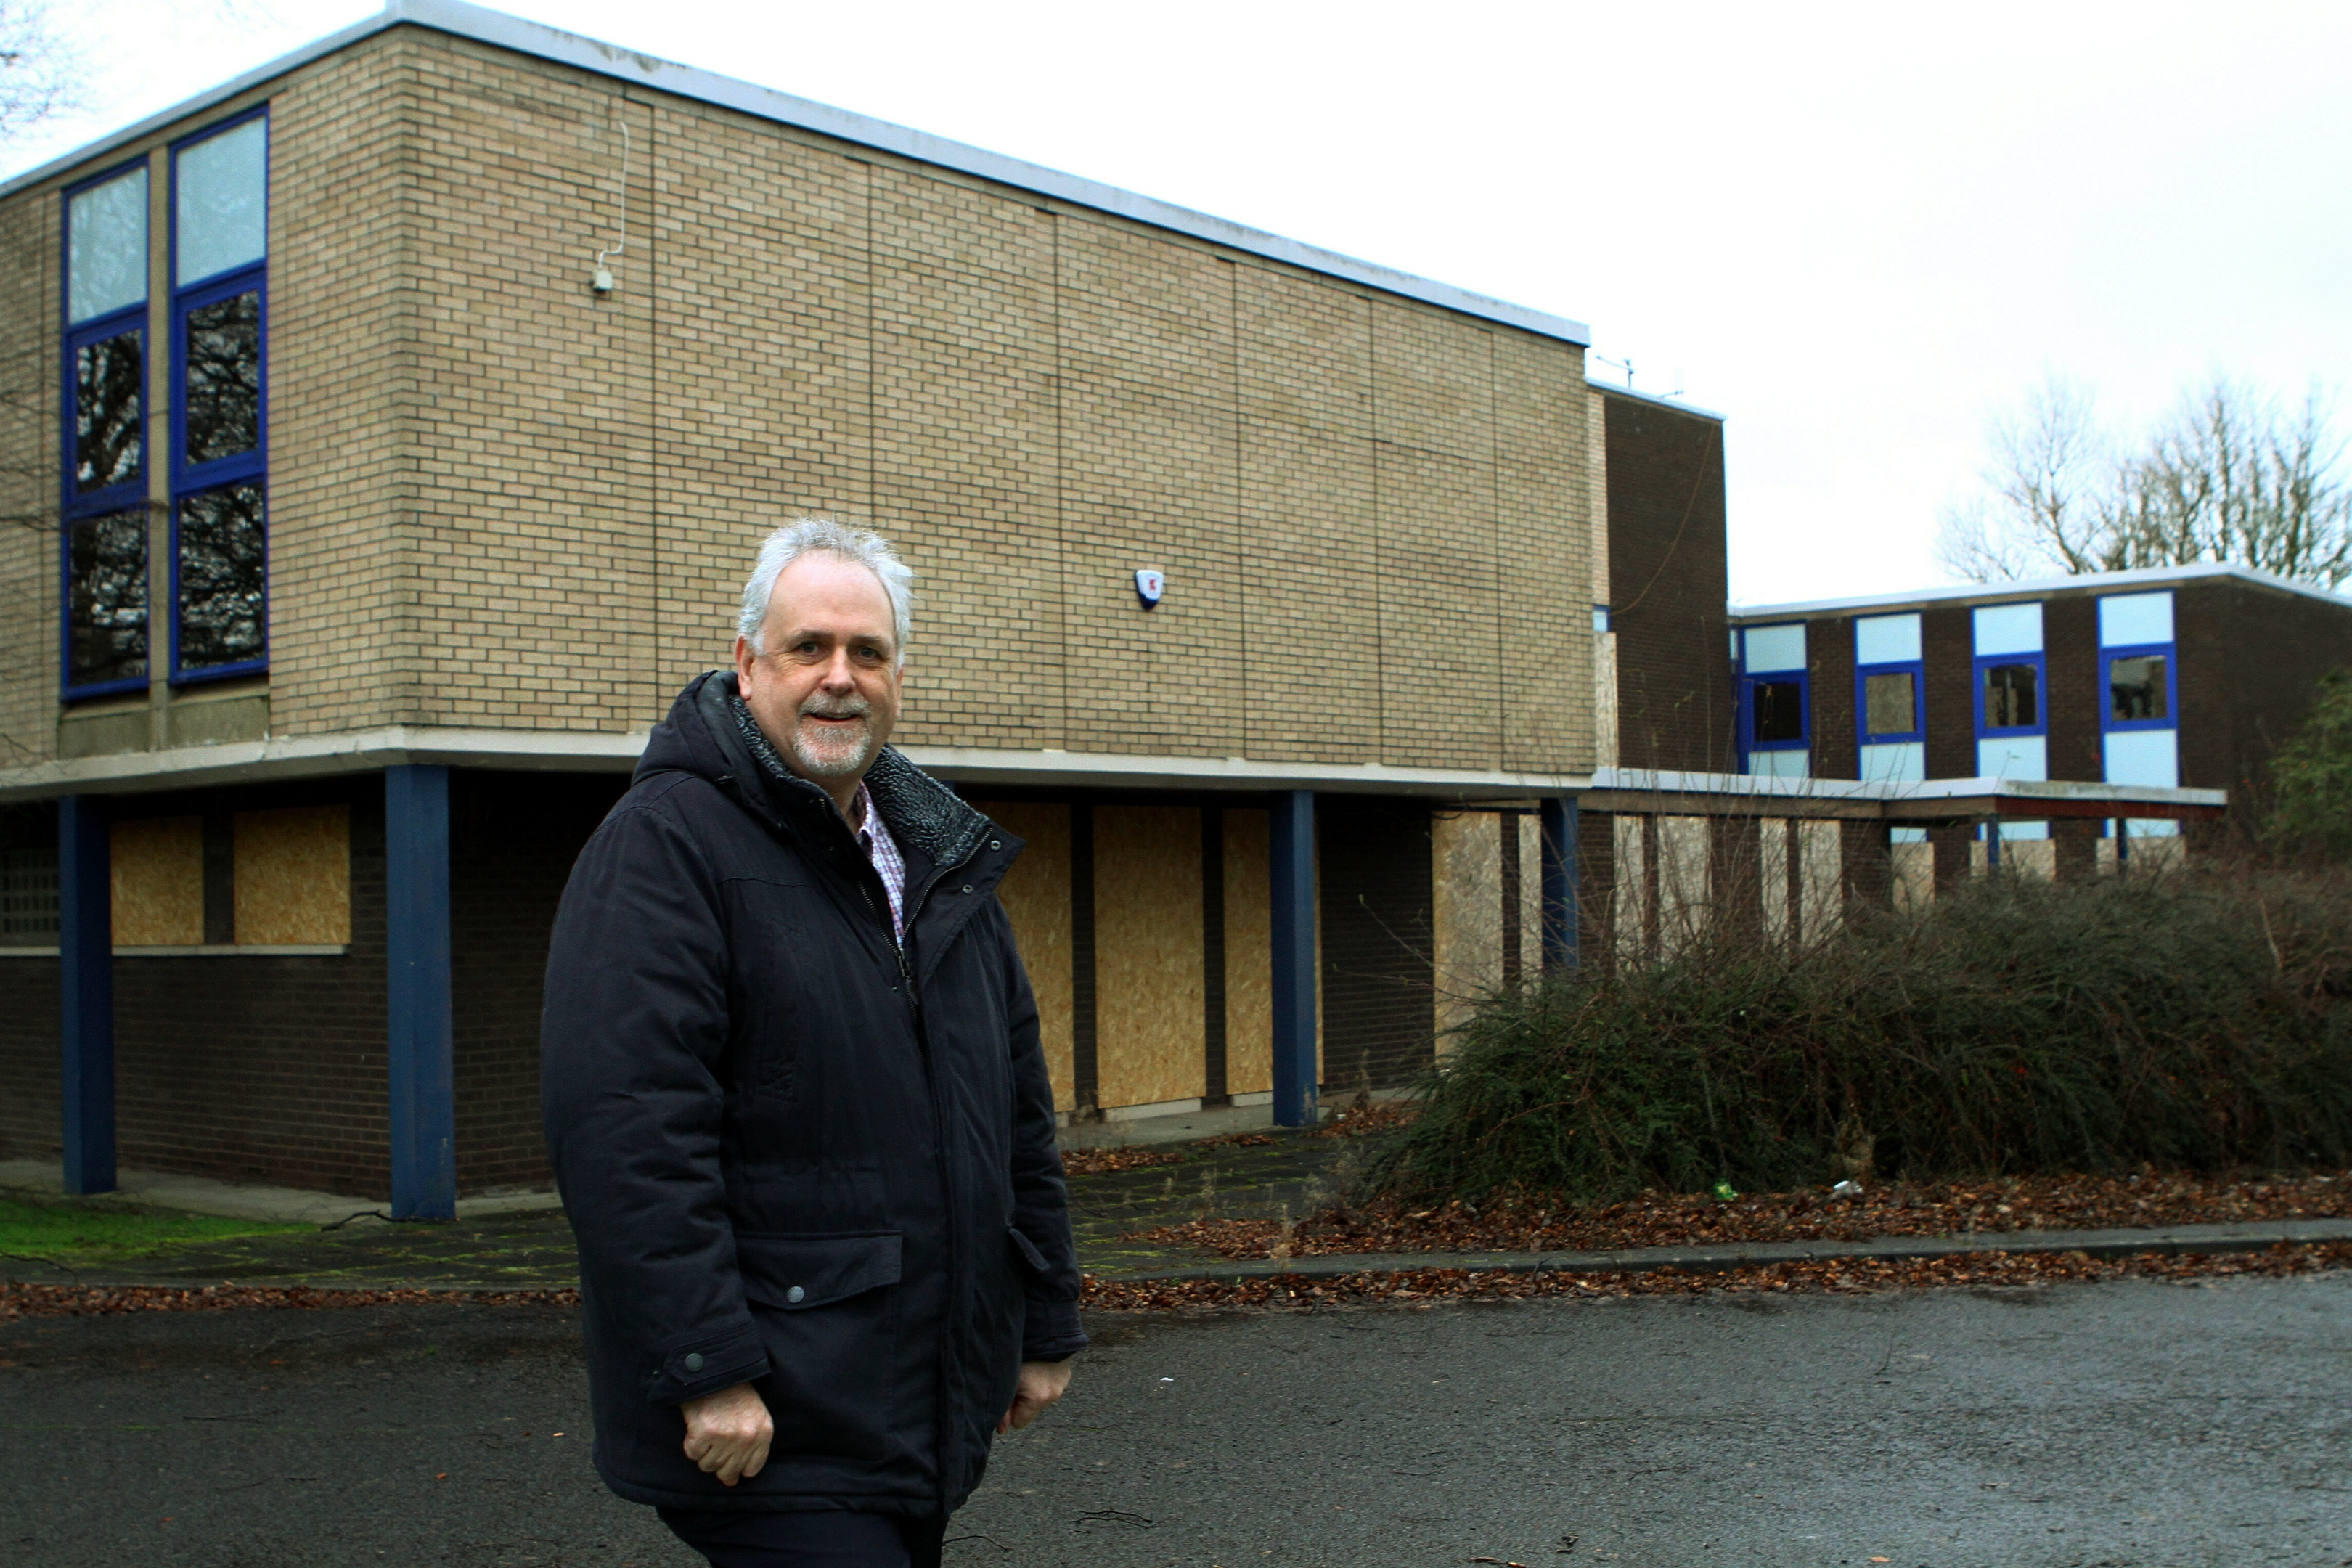 Councillor Bill Brown standing at the former police station on Napier Road in Glenrothes.